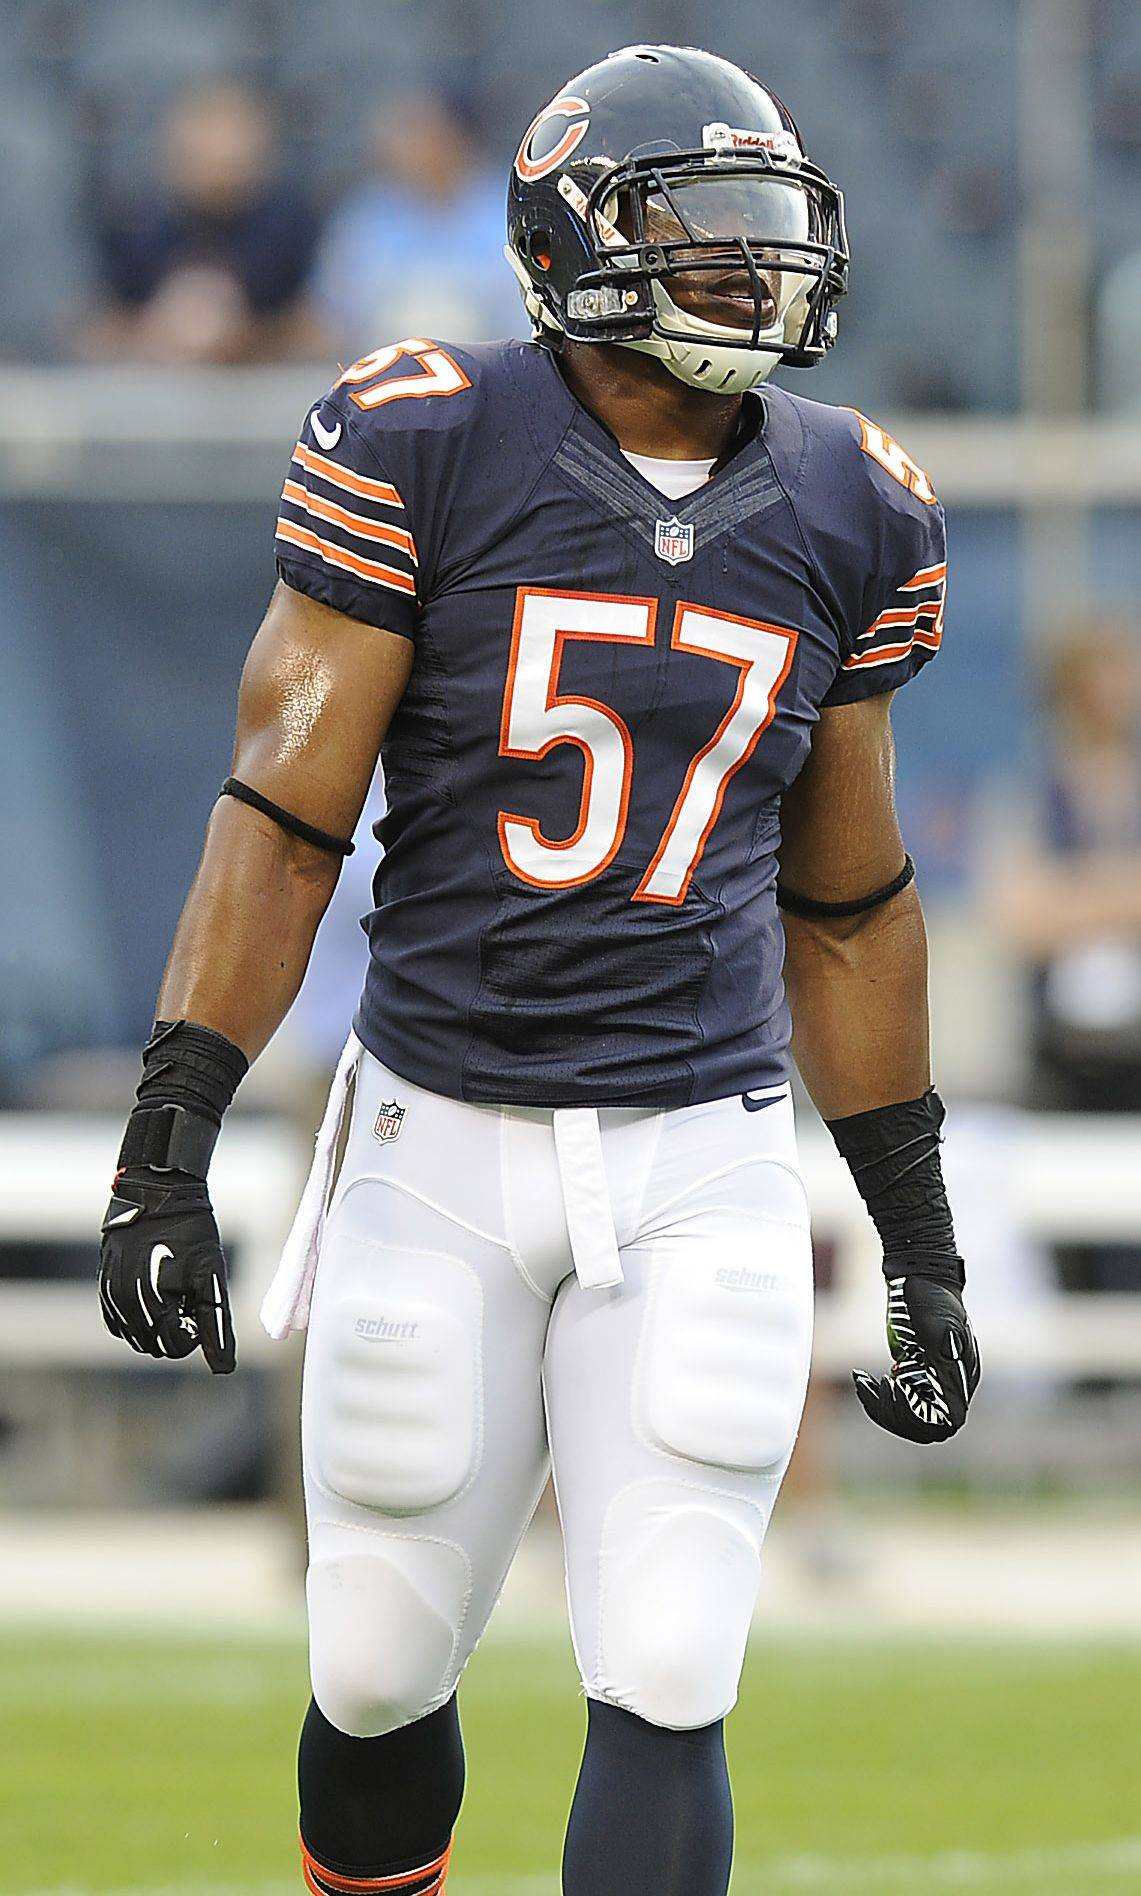 It's early, but linebacker Jonathan Bostic has shown flashes of great ability in the Bears' first two preseason games.